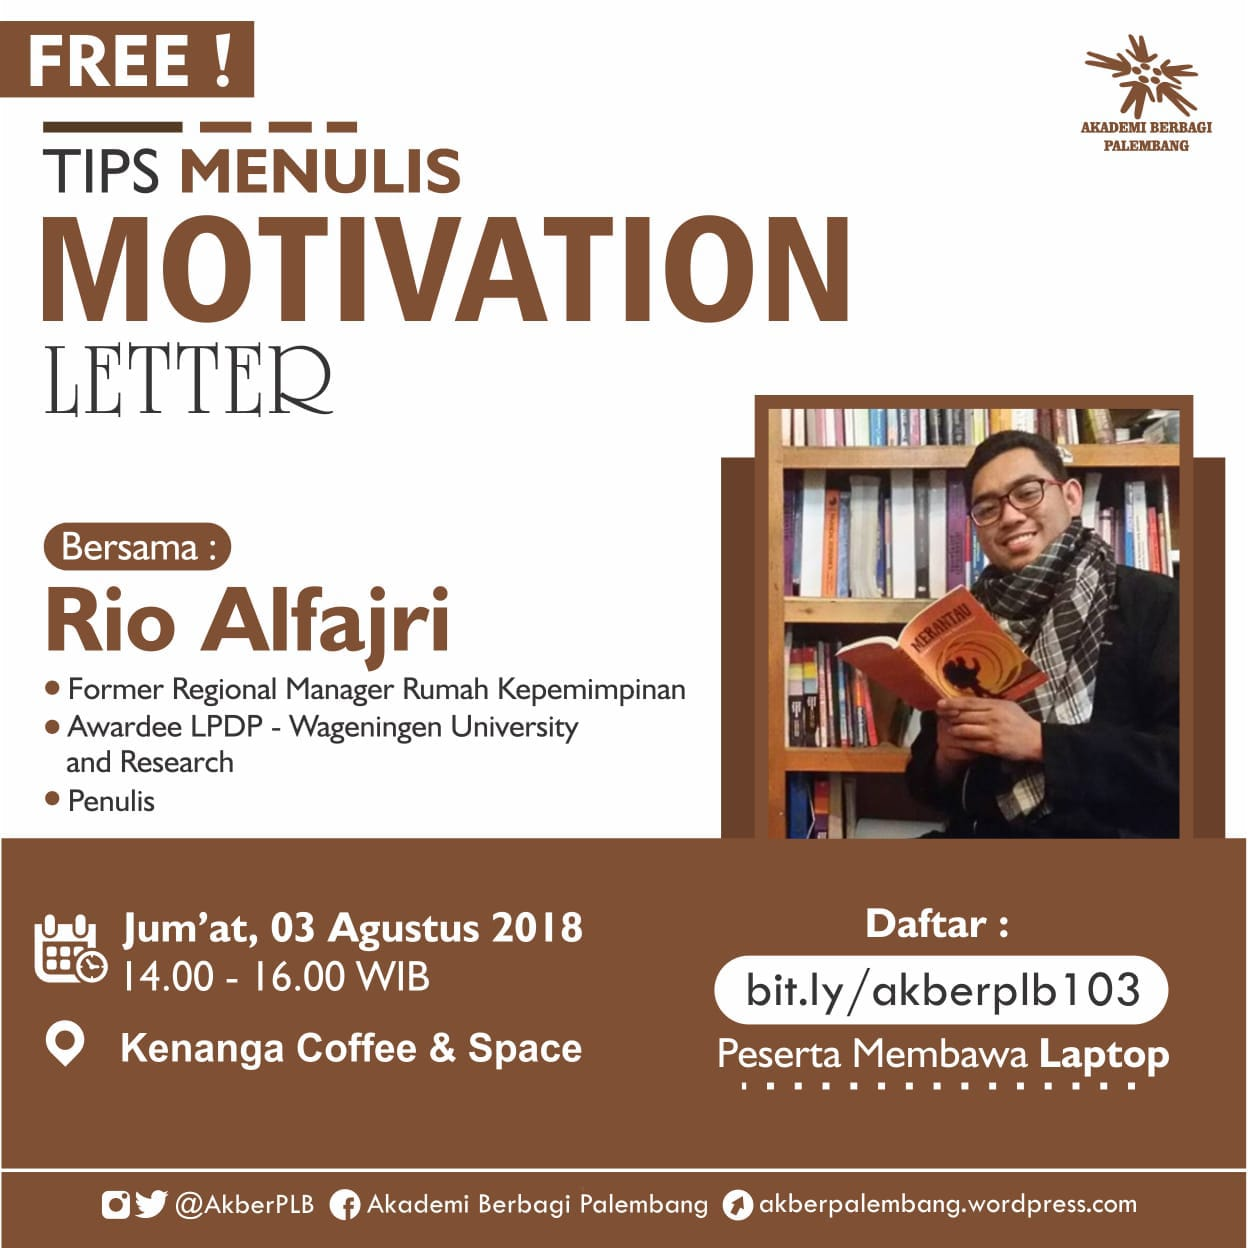 Palembang . : Tips Menulis Motivation Letter